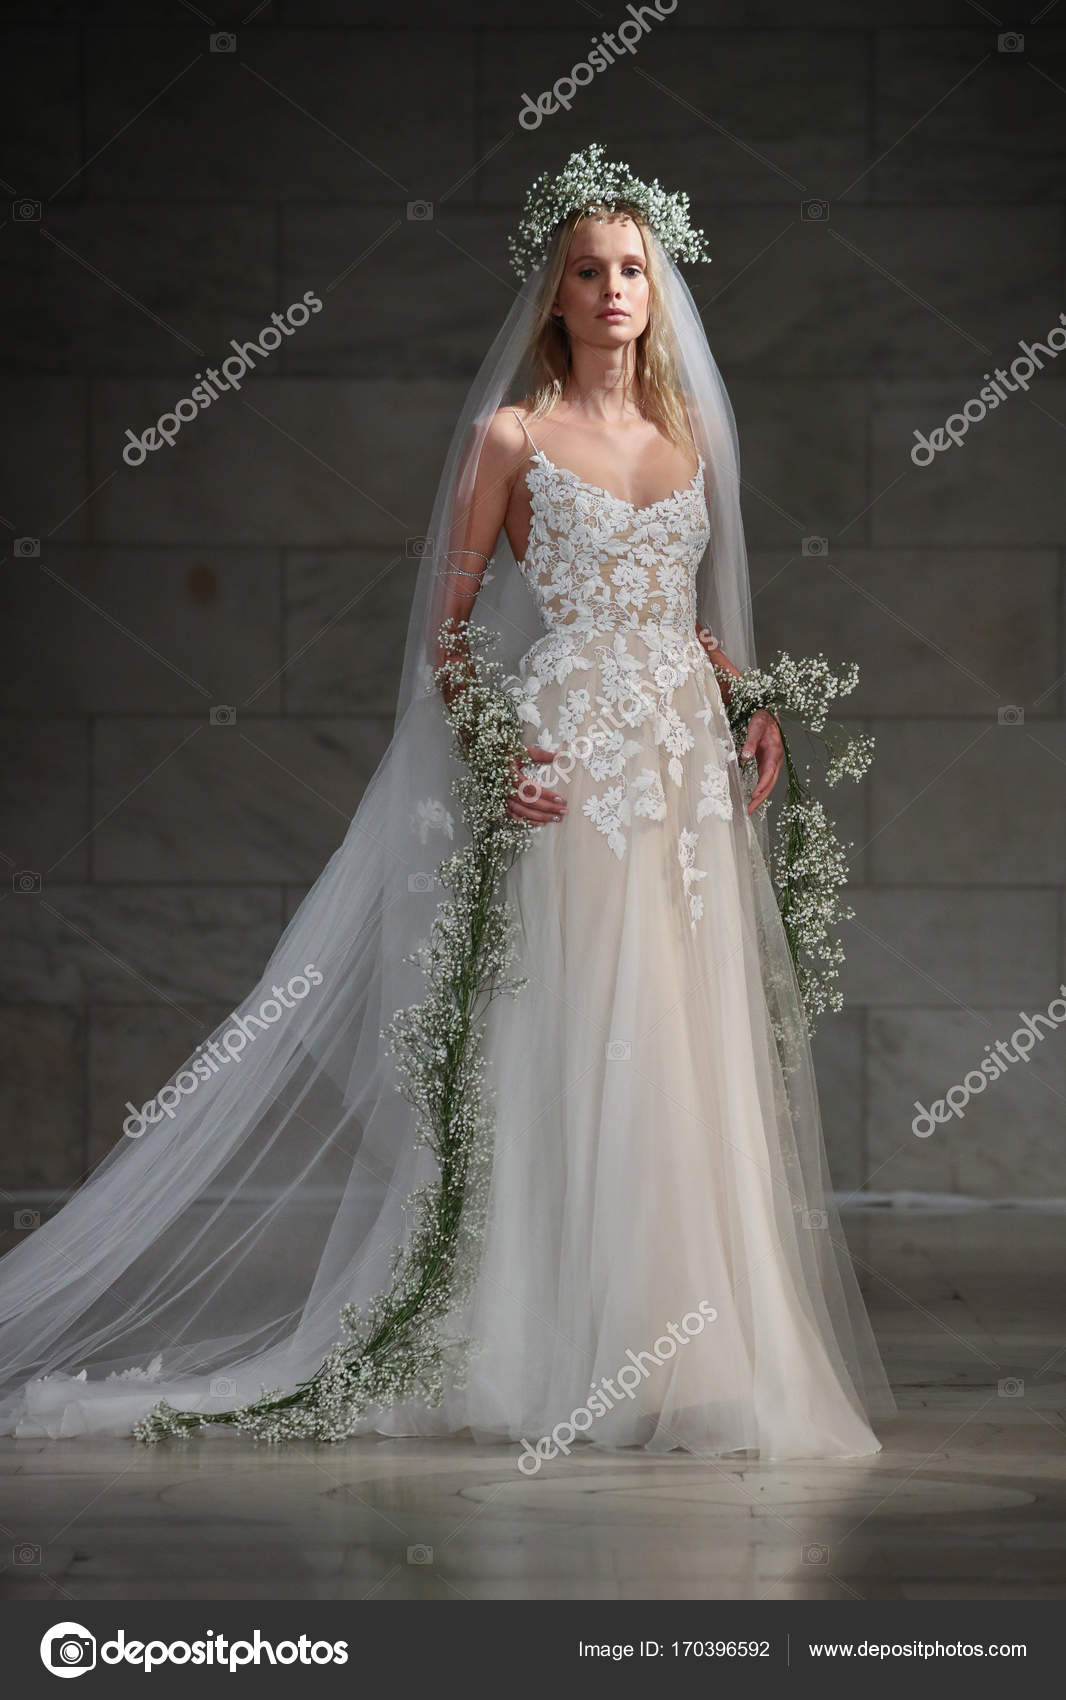 Reem acra bridal show stock editorial photo fashionstock 170396592 reem acra bridal show stock photo junglespirit